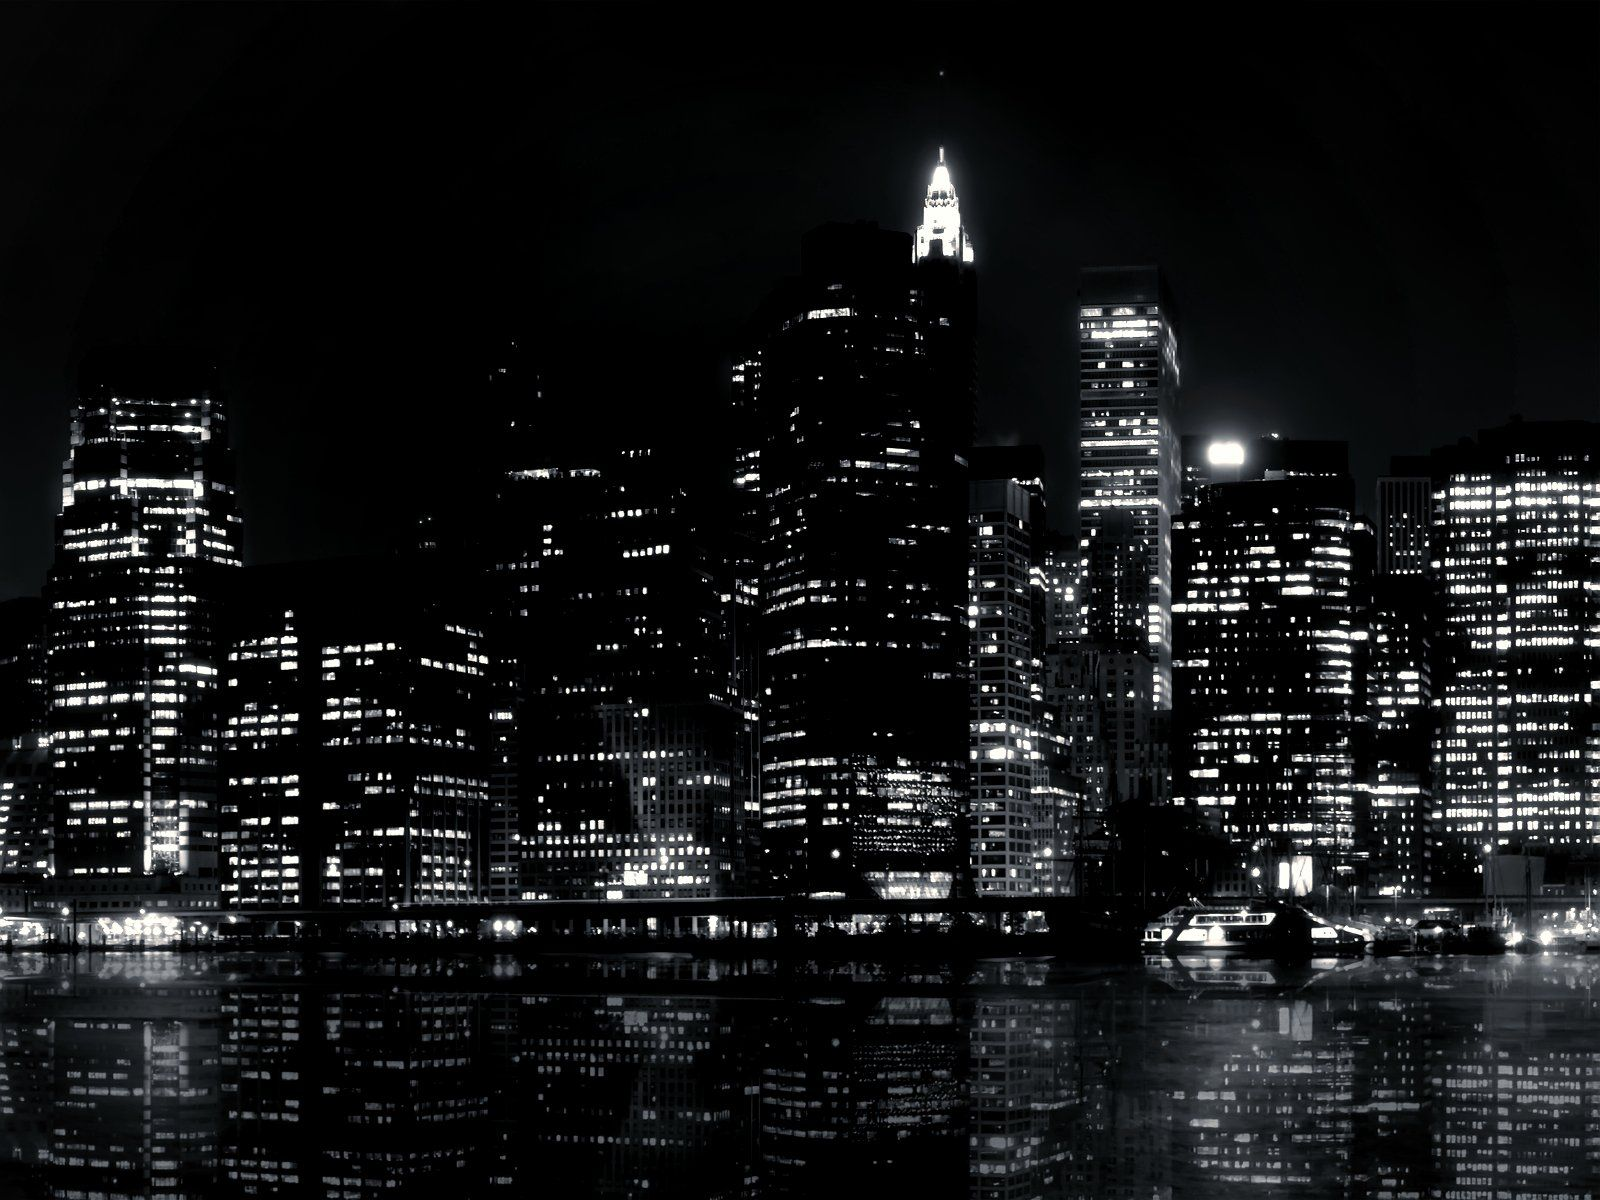 Blackandwhitewallpaperpng Black White Pinterest - City lights wallpaper for bedroom